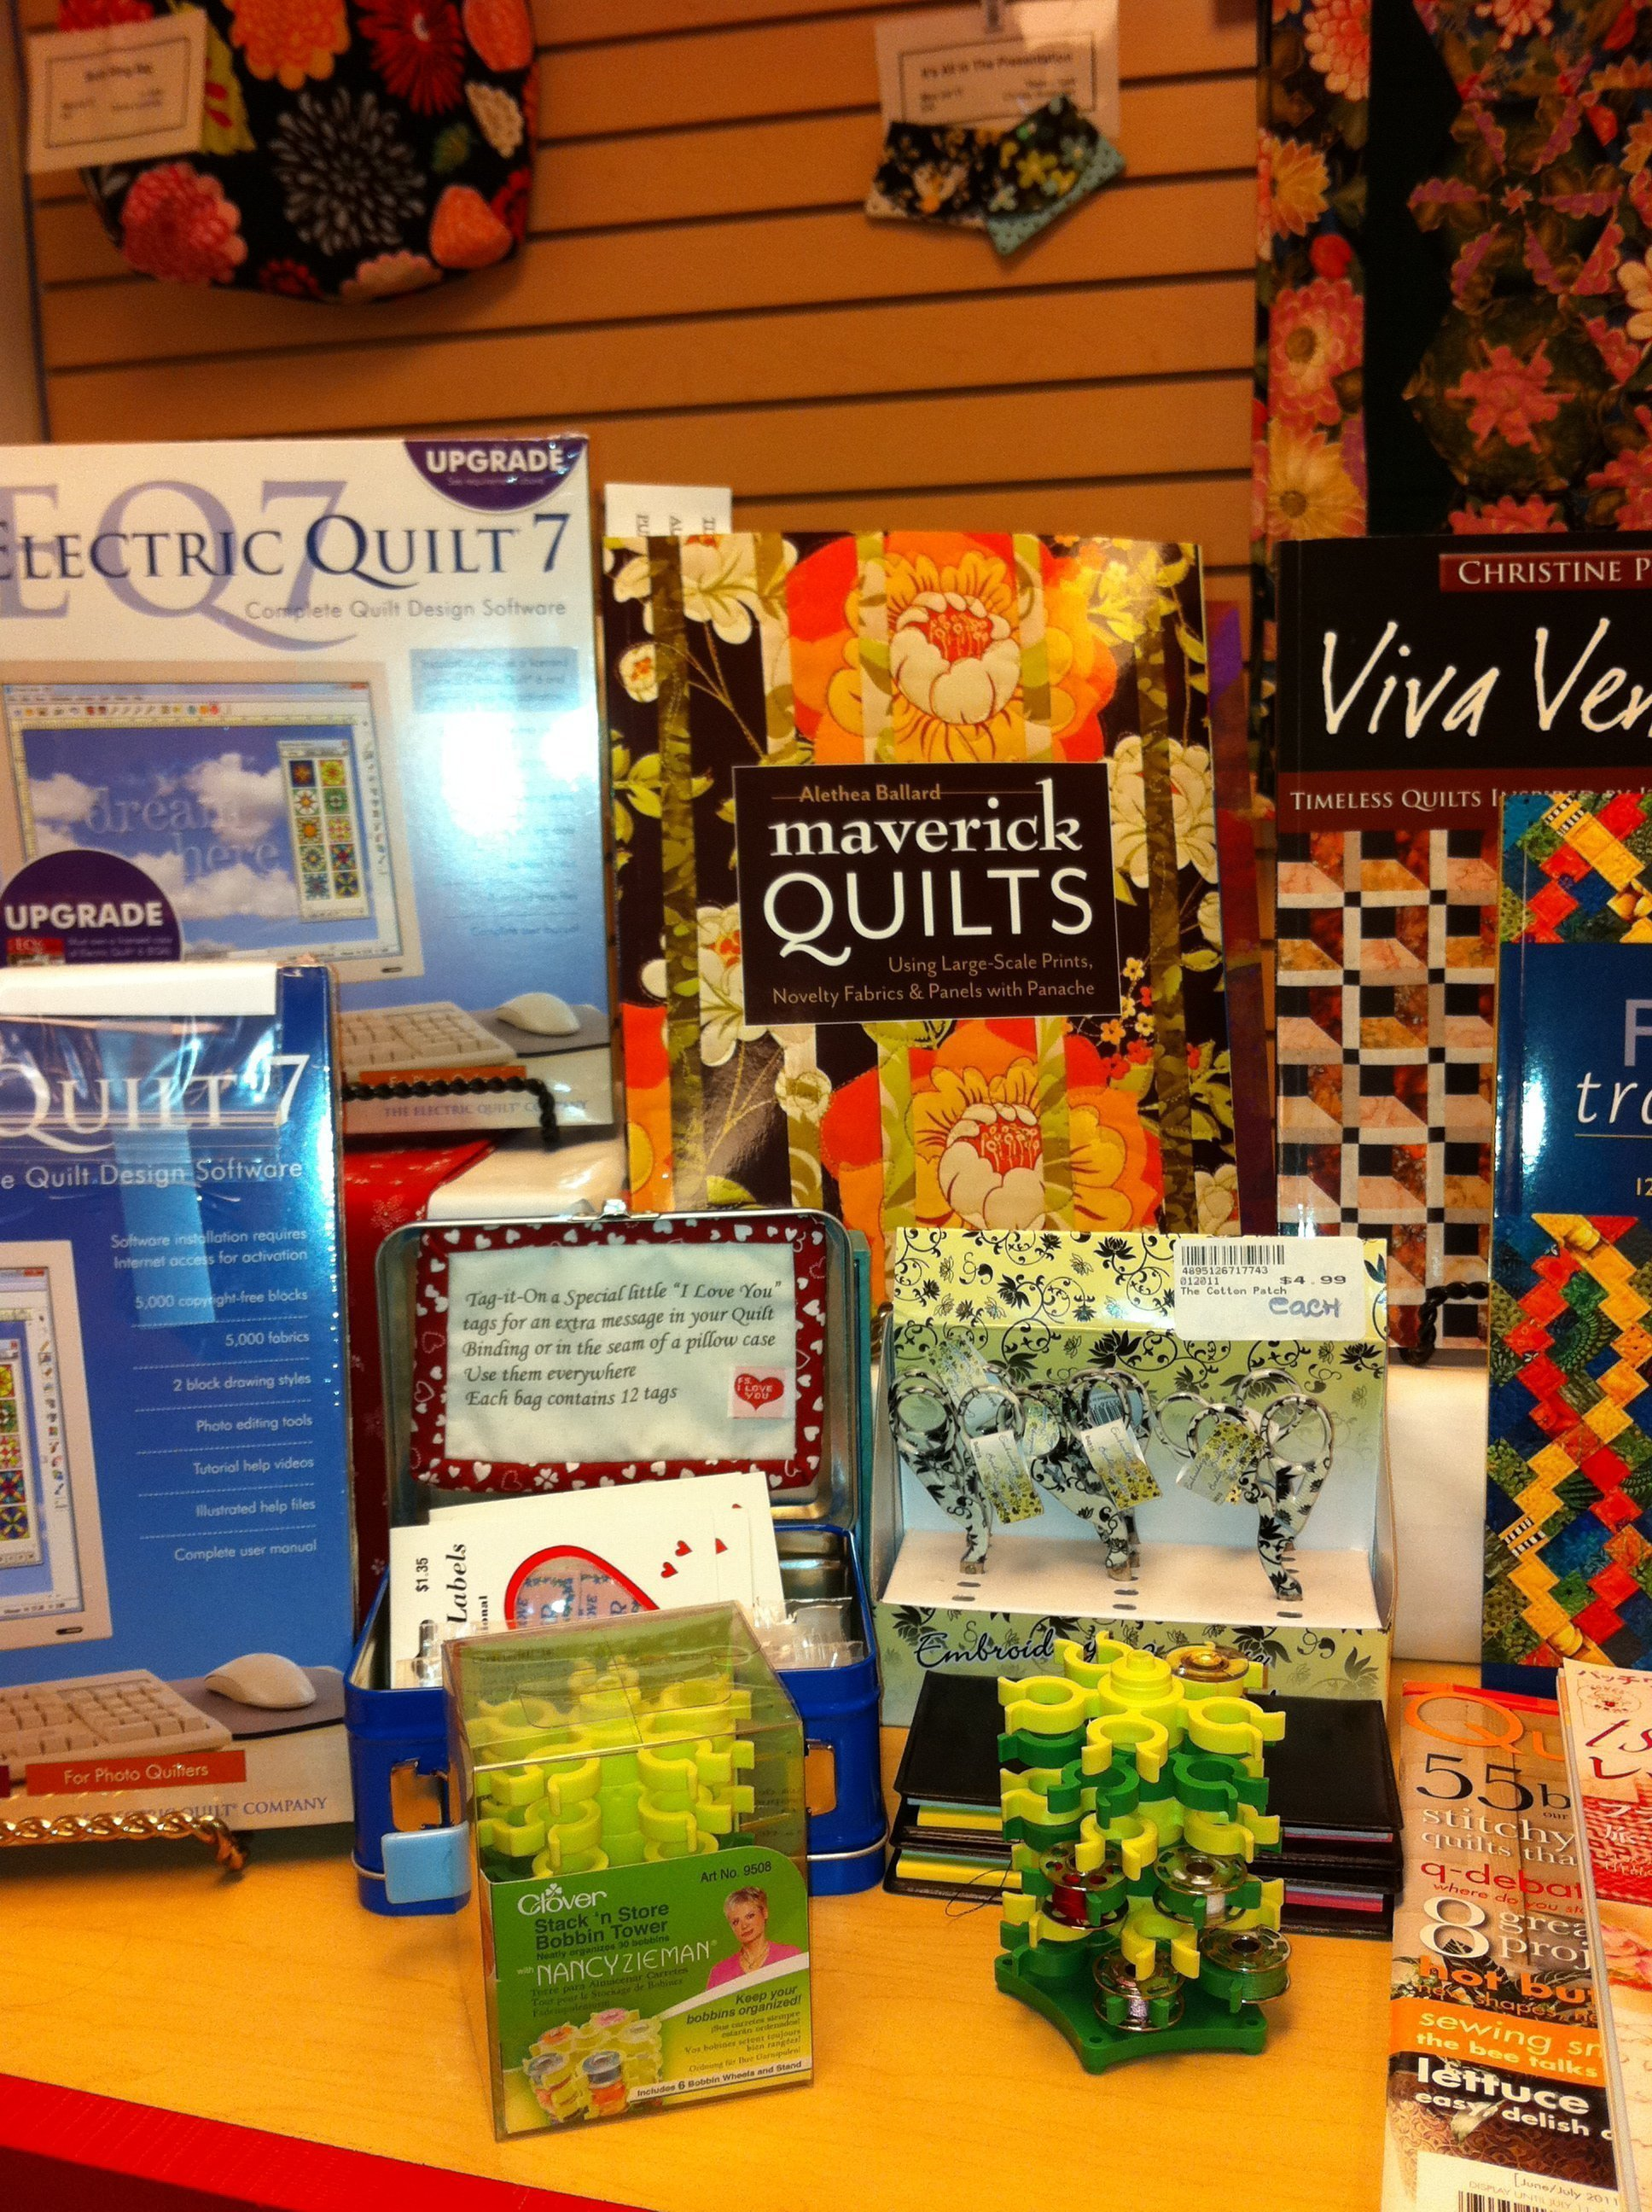 Seeing Maverick Quilts for sale when I go somewhere!